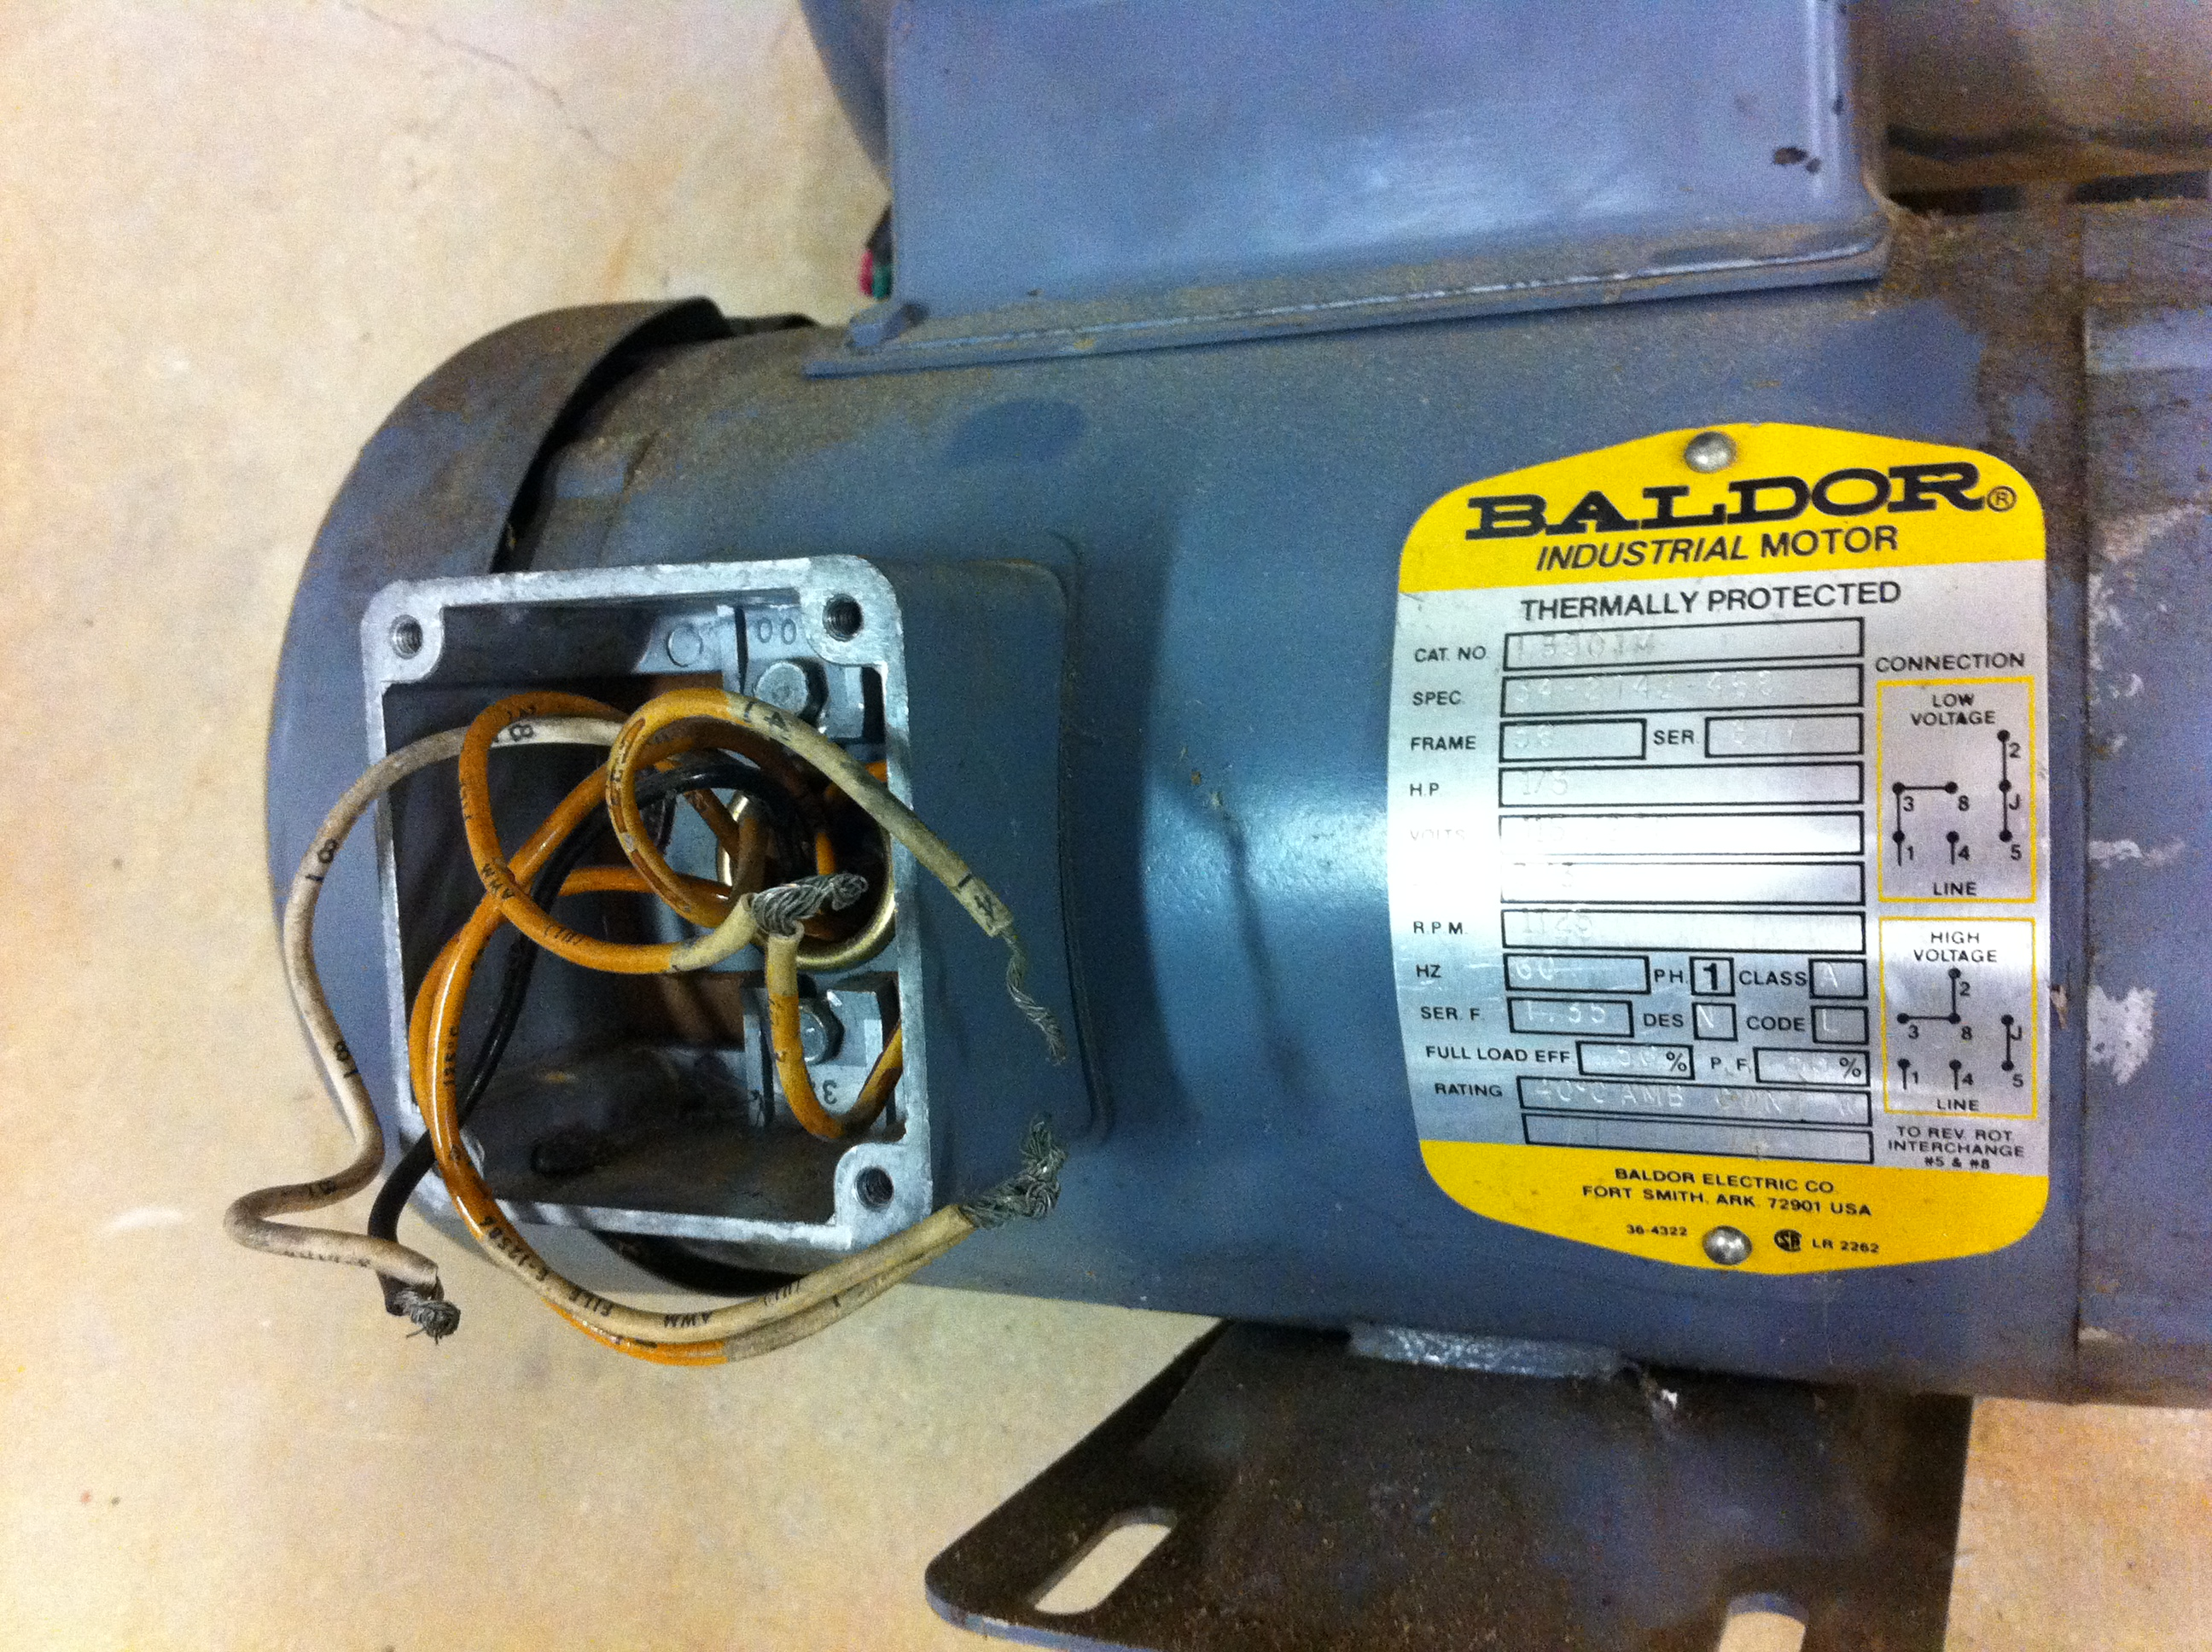 Help Wiring Baldor Motor - The Garage Journal Board on baldor wiring-diagram 56c 115 230, baldor motor wiring, baldor single phase generator wiring diagram, baldor vfd wiring-diagram, baldor brake motor schematics,